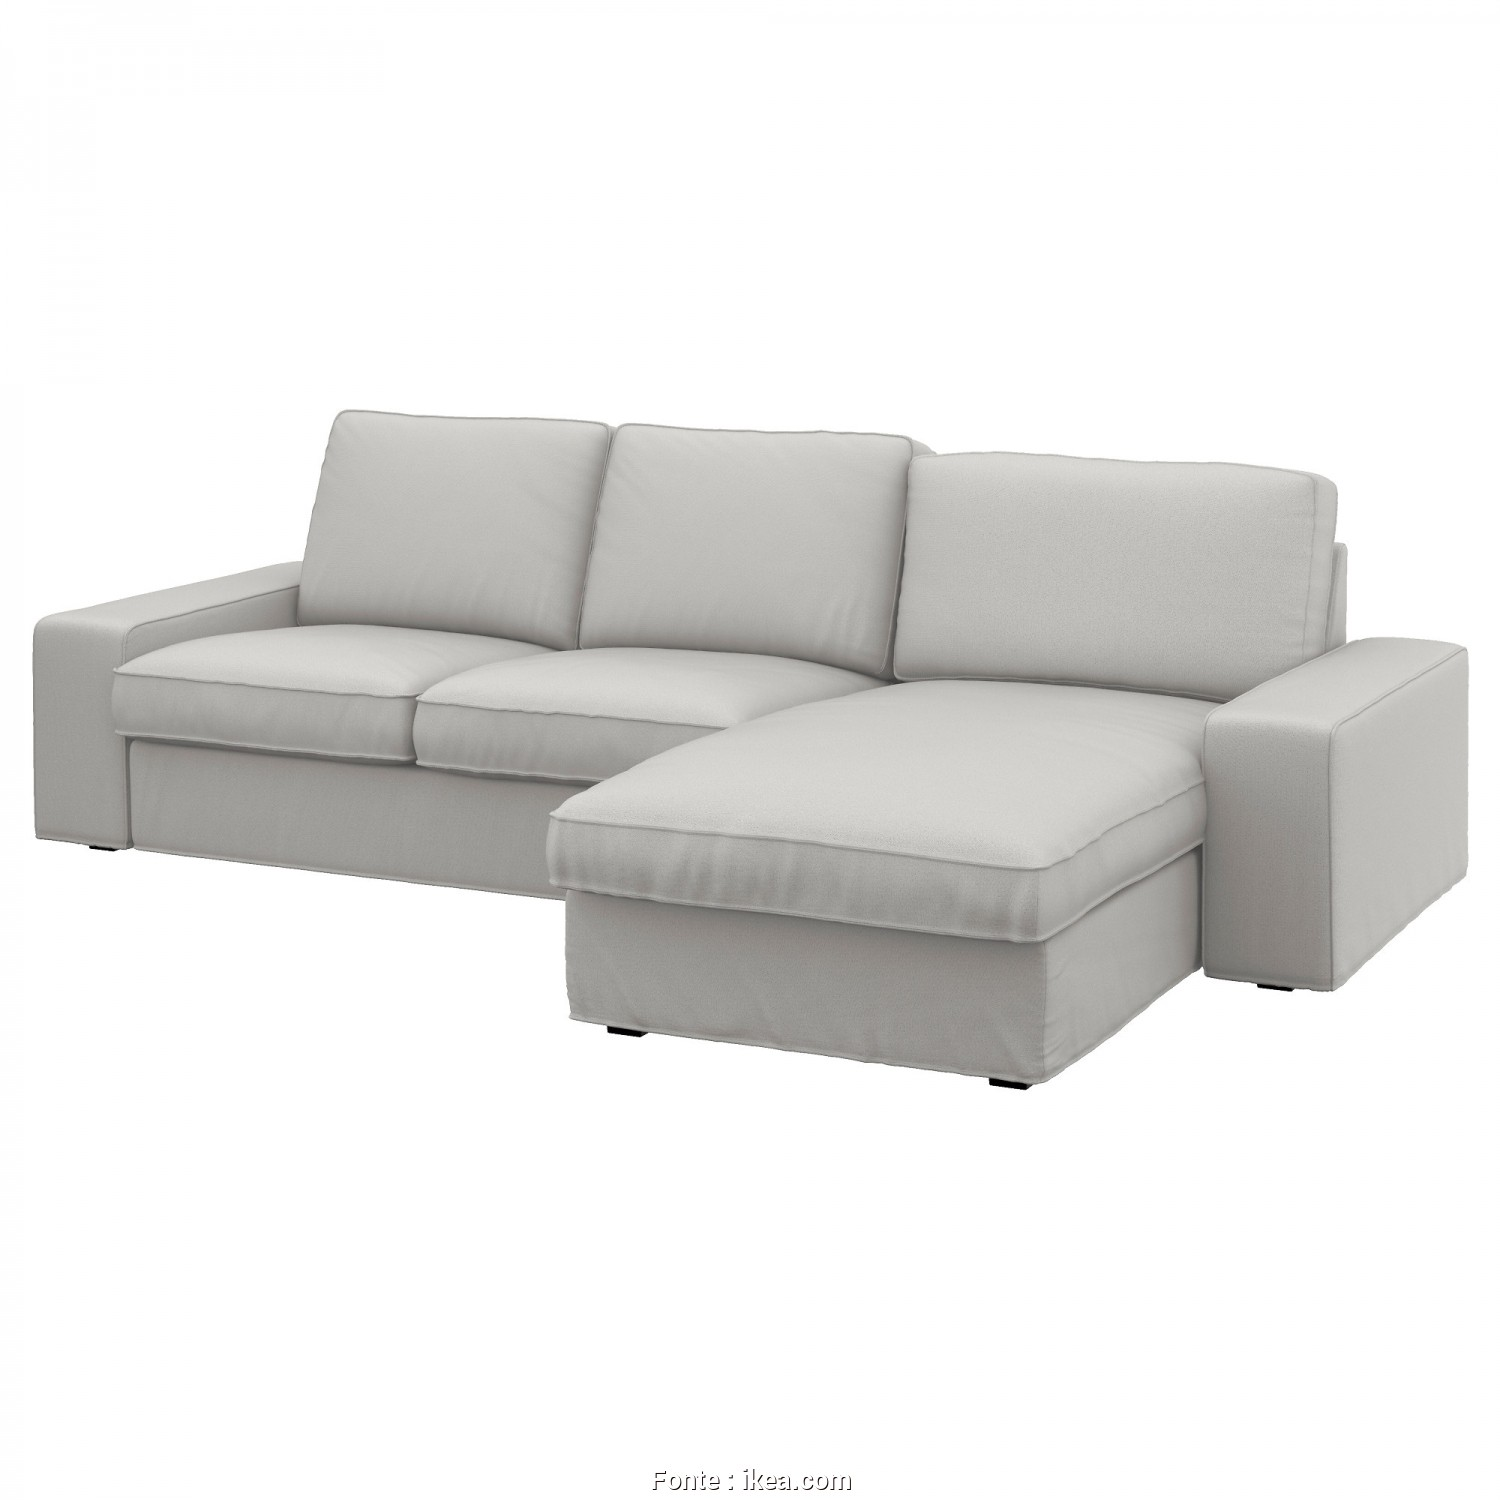 Ikea Klippan 3 Seater Sofa Dimensions, Delizioso IKEA KIVIK 3-Seat Sofa, Cover Is Easy To Keep Clean As It Is